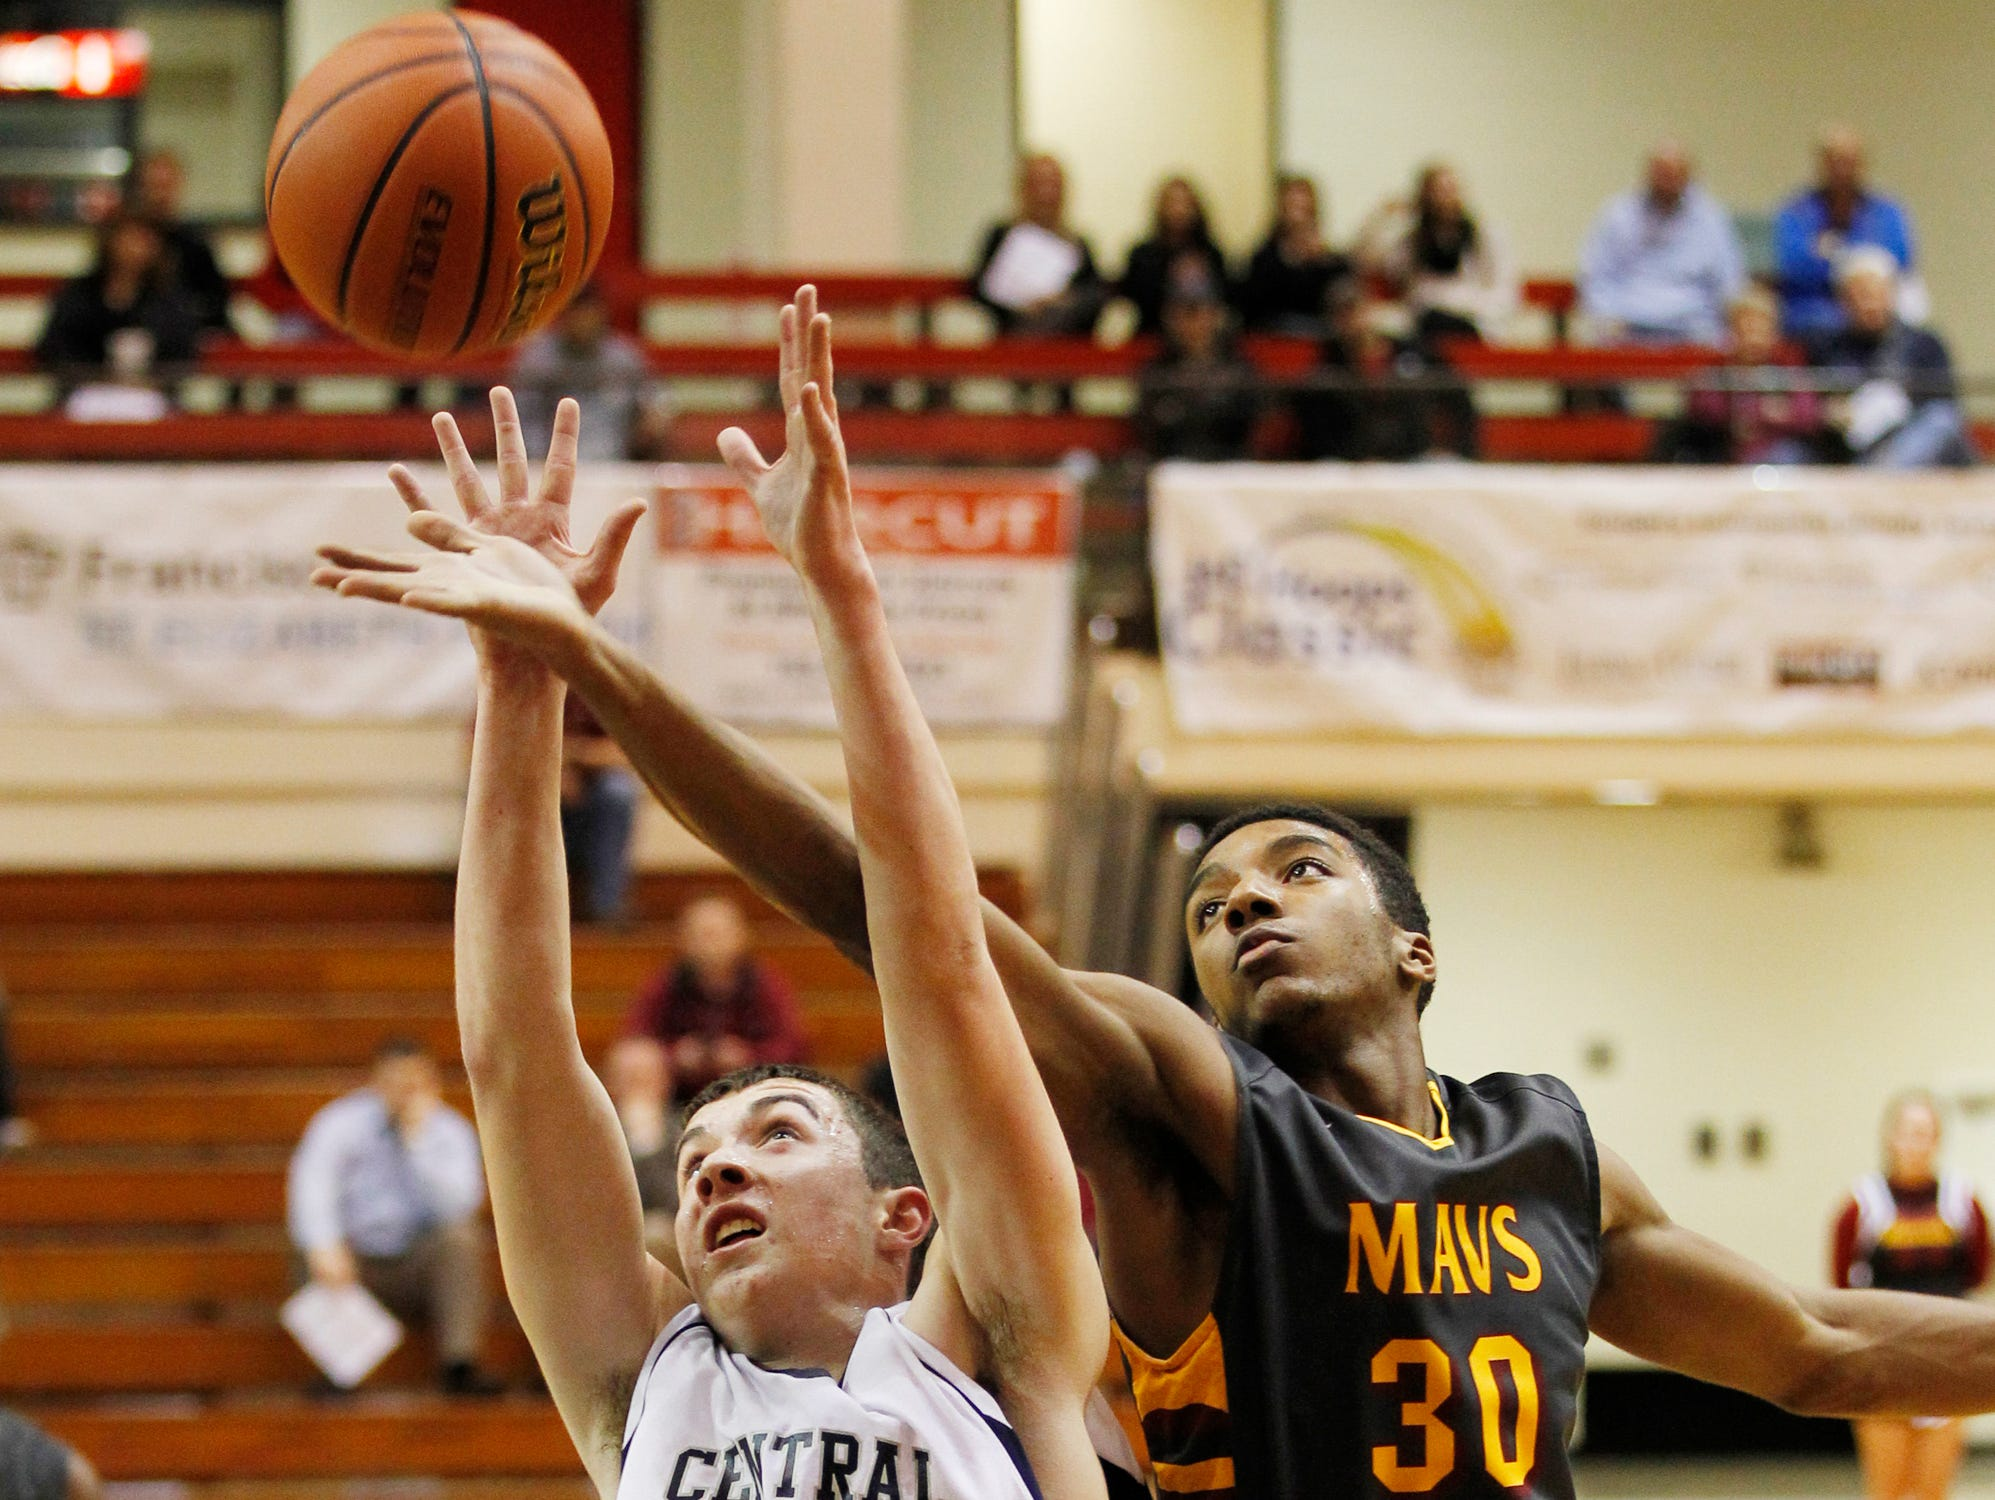 McCutcheon's Charles Phinisee reaches over Trent Thompson of Central Catholic in an attempt grab a rebound in the J&C Hoops Classic Tuesday, December 1, 2015, at Lafayette Jeff. McCutcheon won in a landslide 114-44 over Central Catholic.